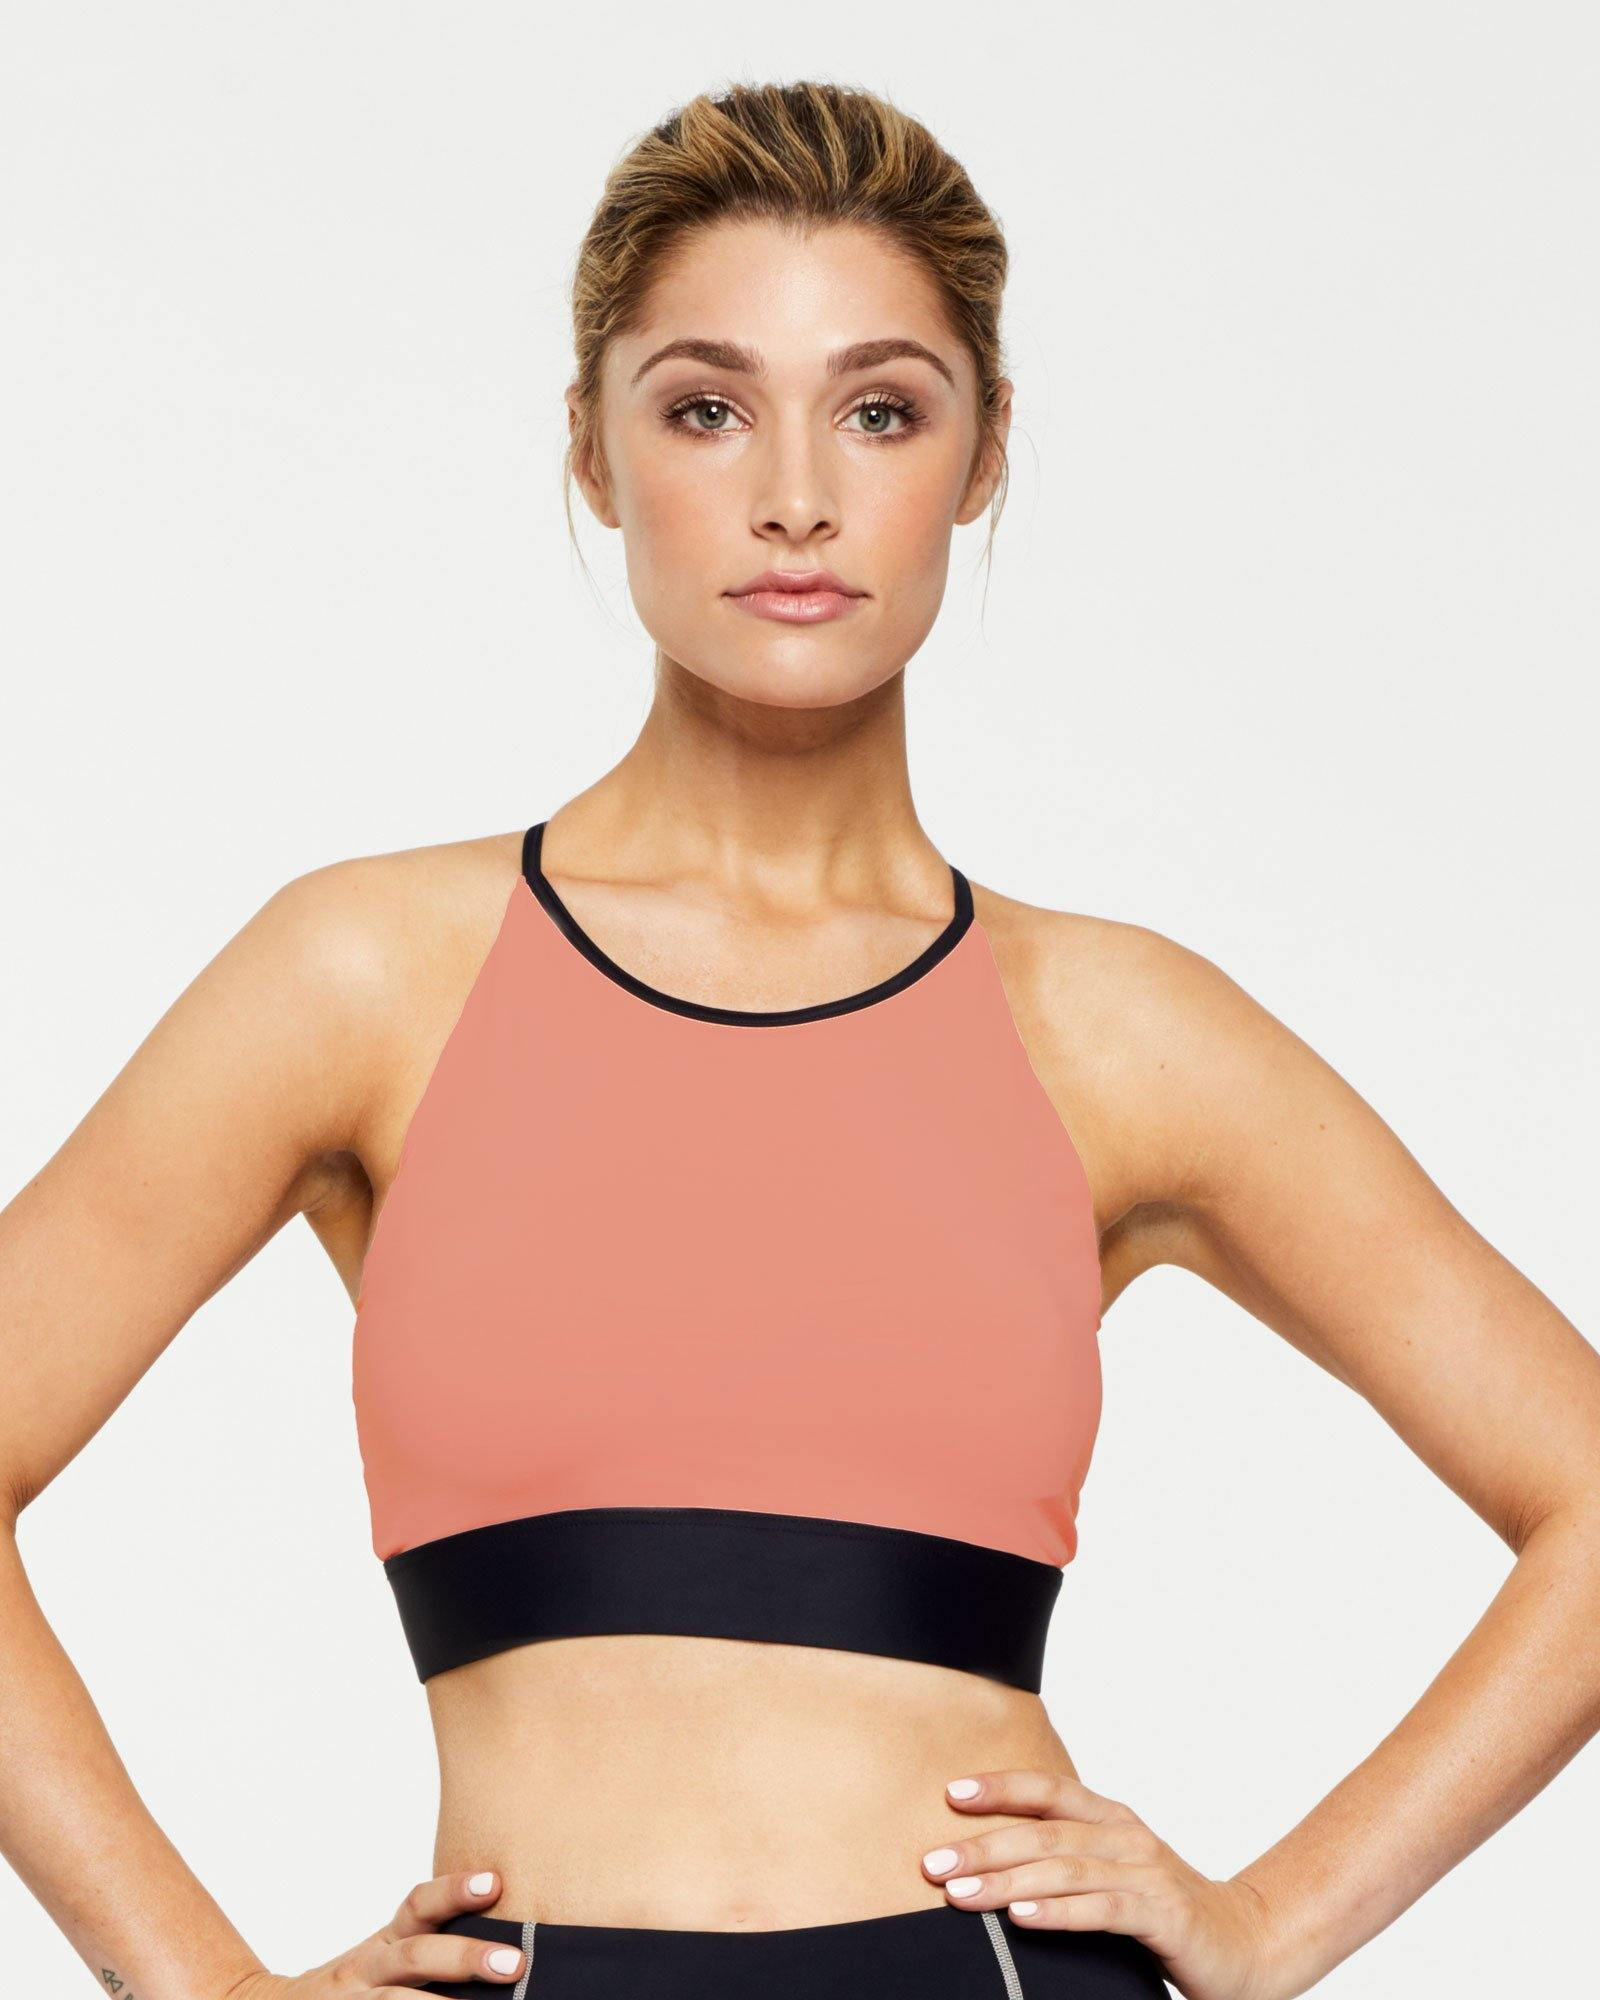 Warrior Trapezius Halter Crop Top peach with contrast black binding, front view